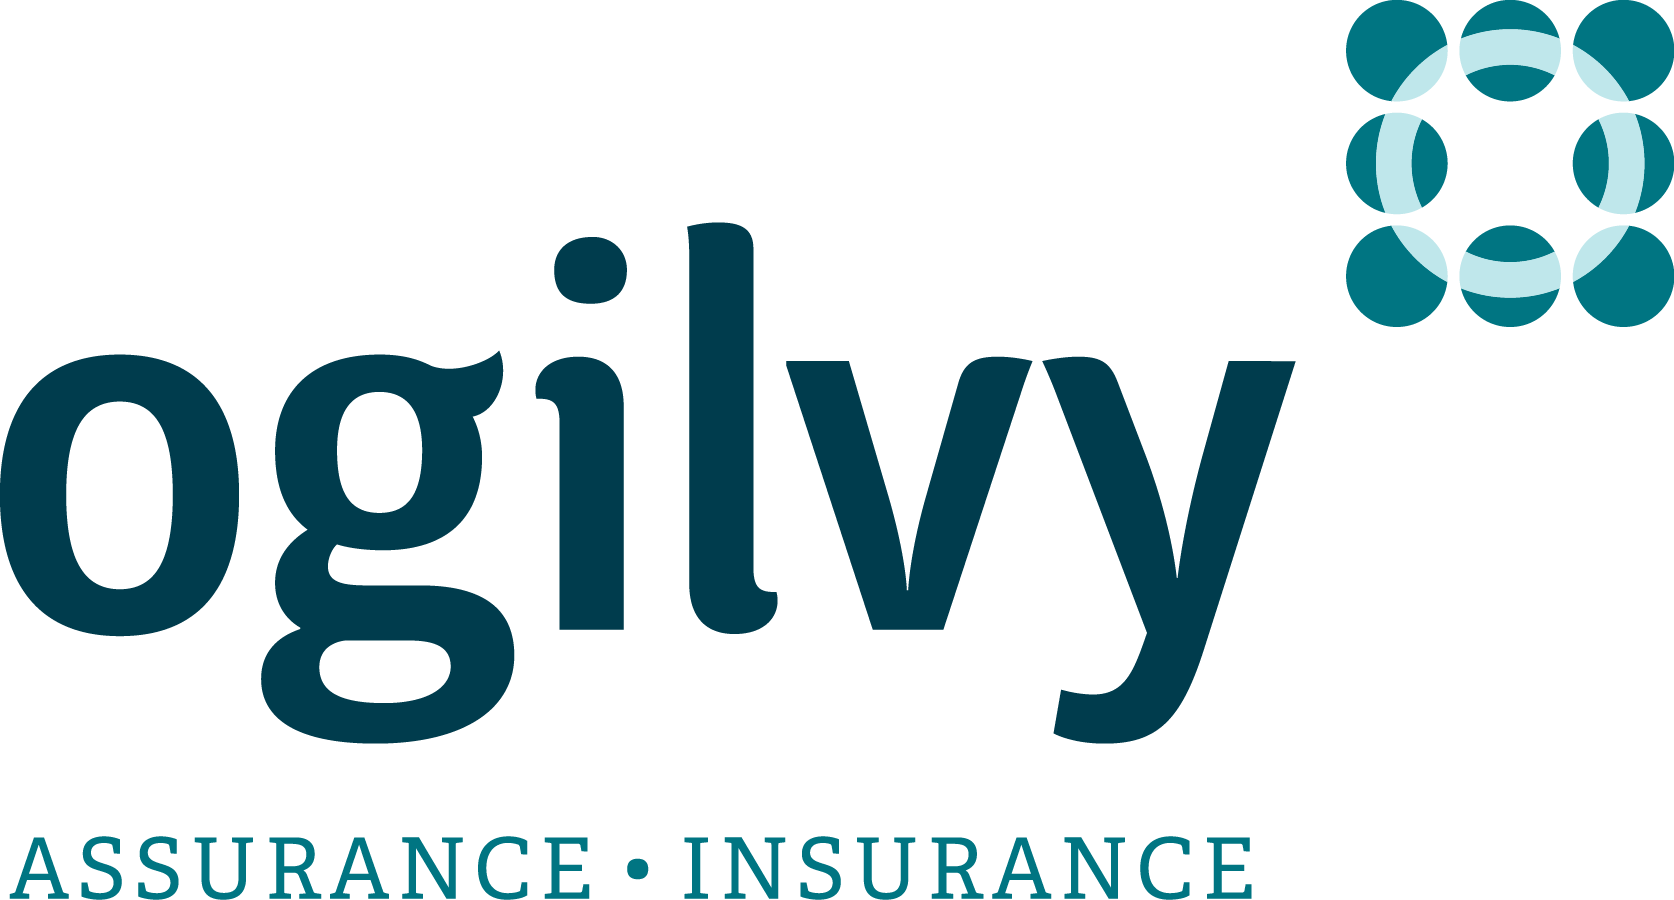 Assurances Ogilvy Insurance Logo